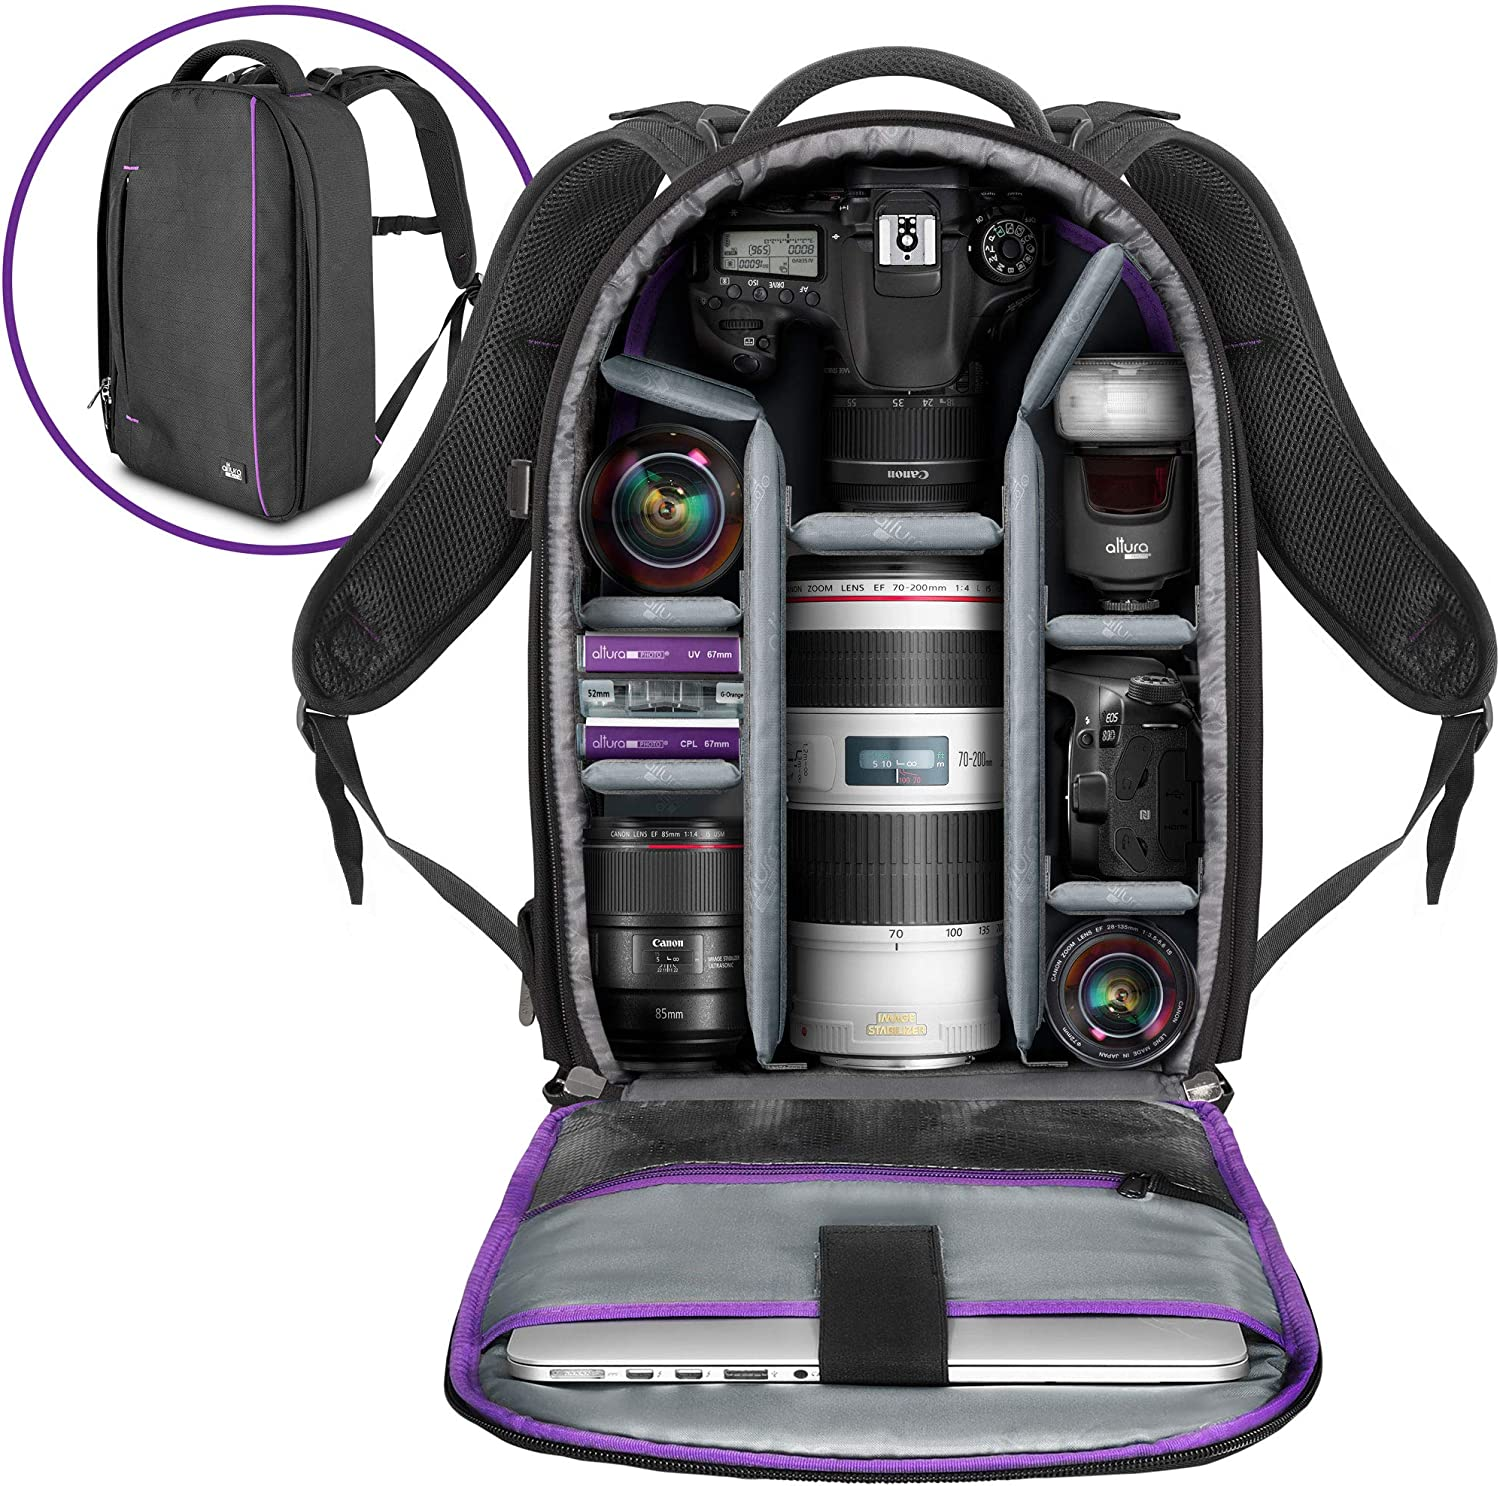 Amazon Com Camera Backpack With Laptop Case For Canon Nikon Sony Mirrorless And Dslr Camera Flash Light And Other Photography Accessories Large Capacity Black Bag With Tripod Holder By Altura Photo